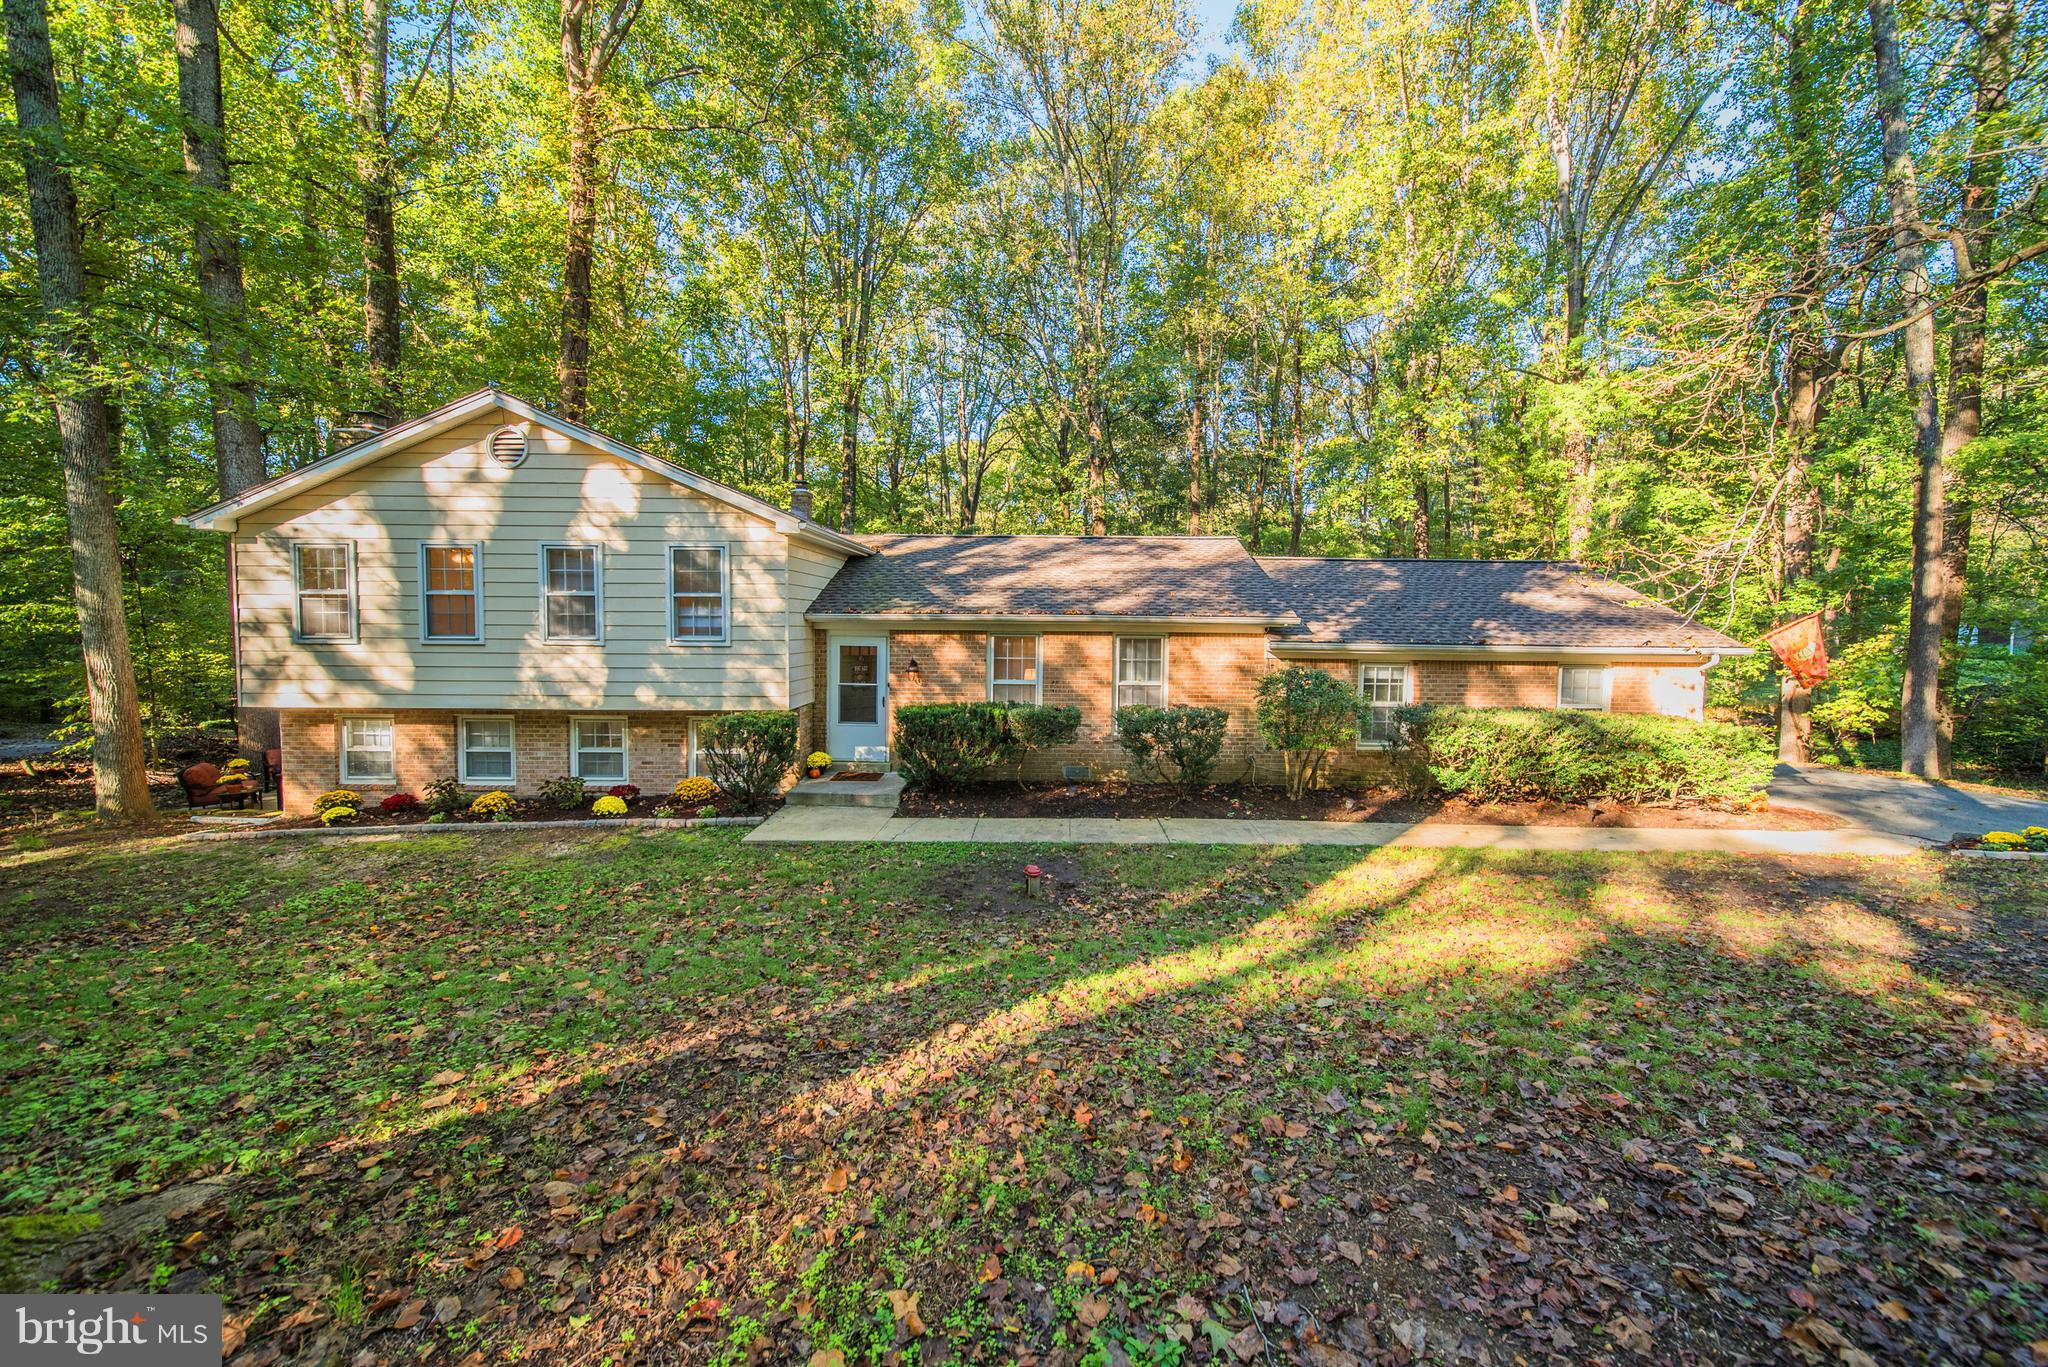 Come home and relax in your charming new house in the desired Mt. Carmel Estates neighborhood. This